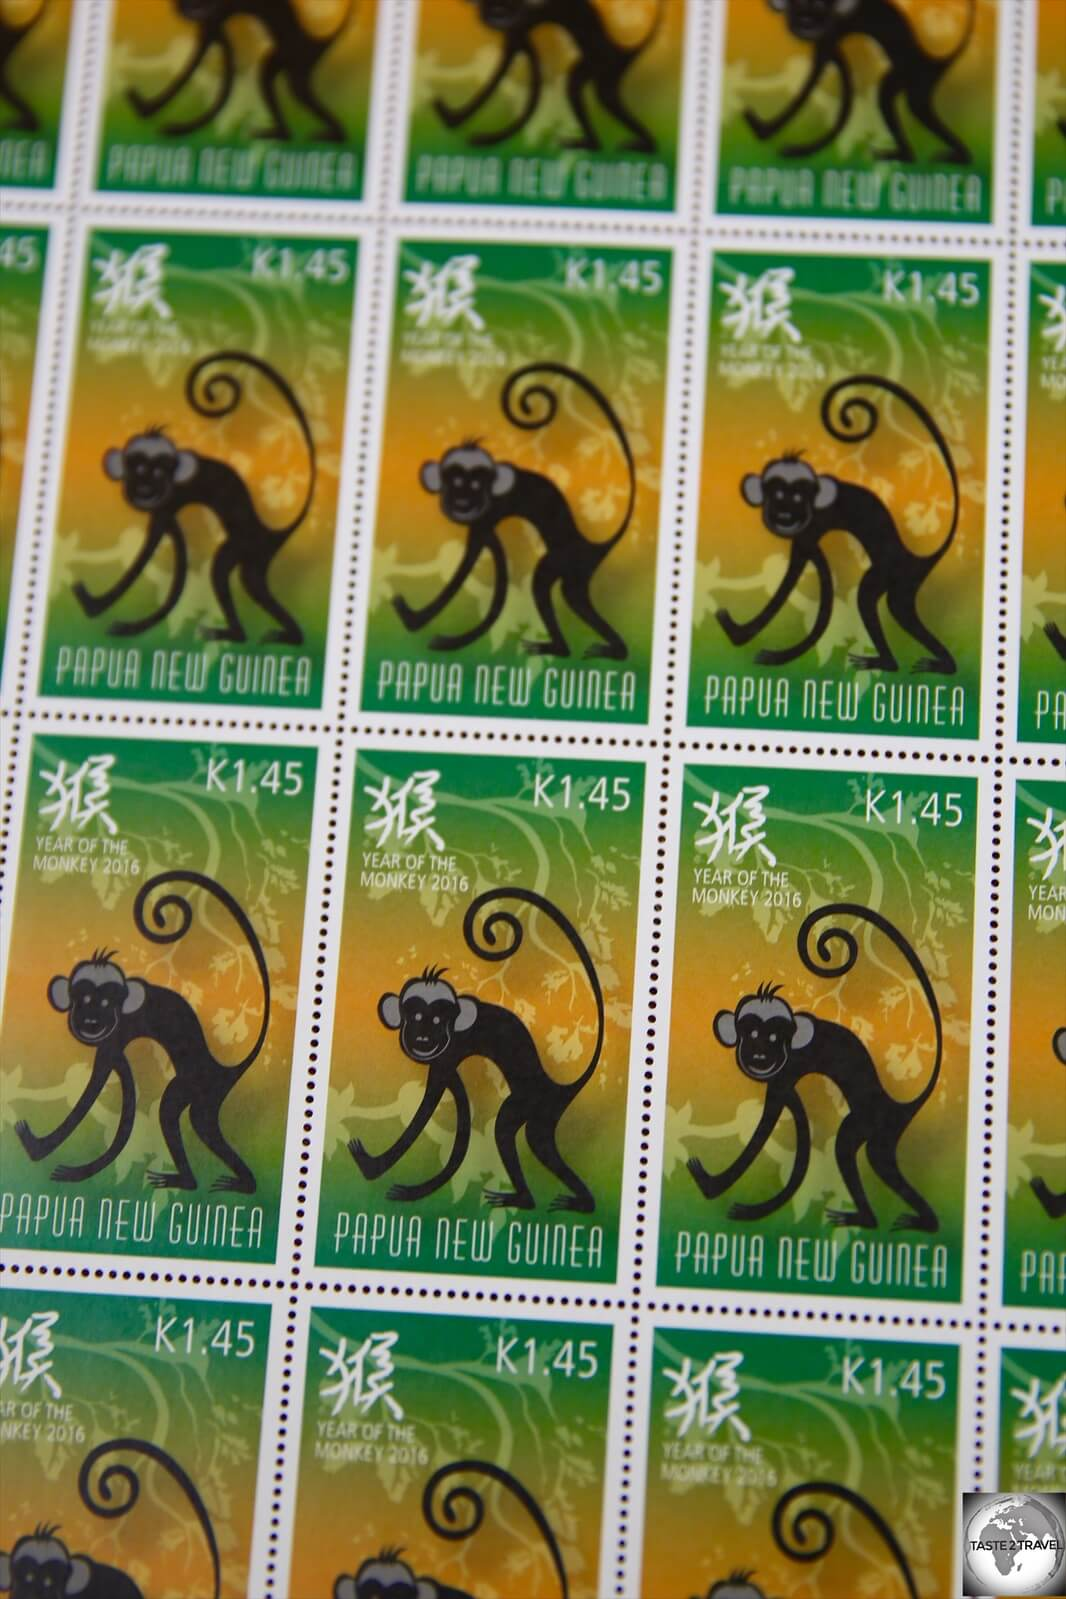 A stamp issued for the Chinese 'Year of the Monkey'.